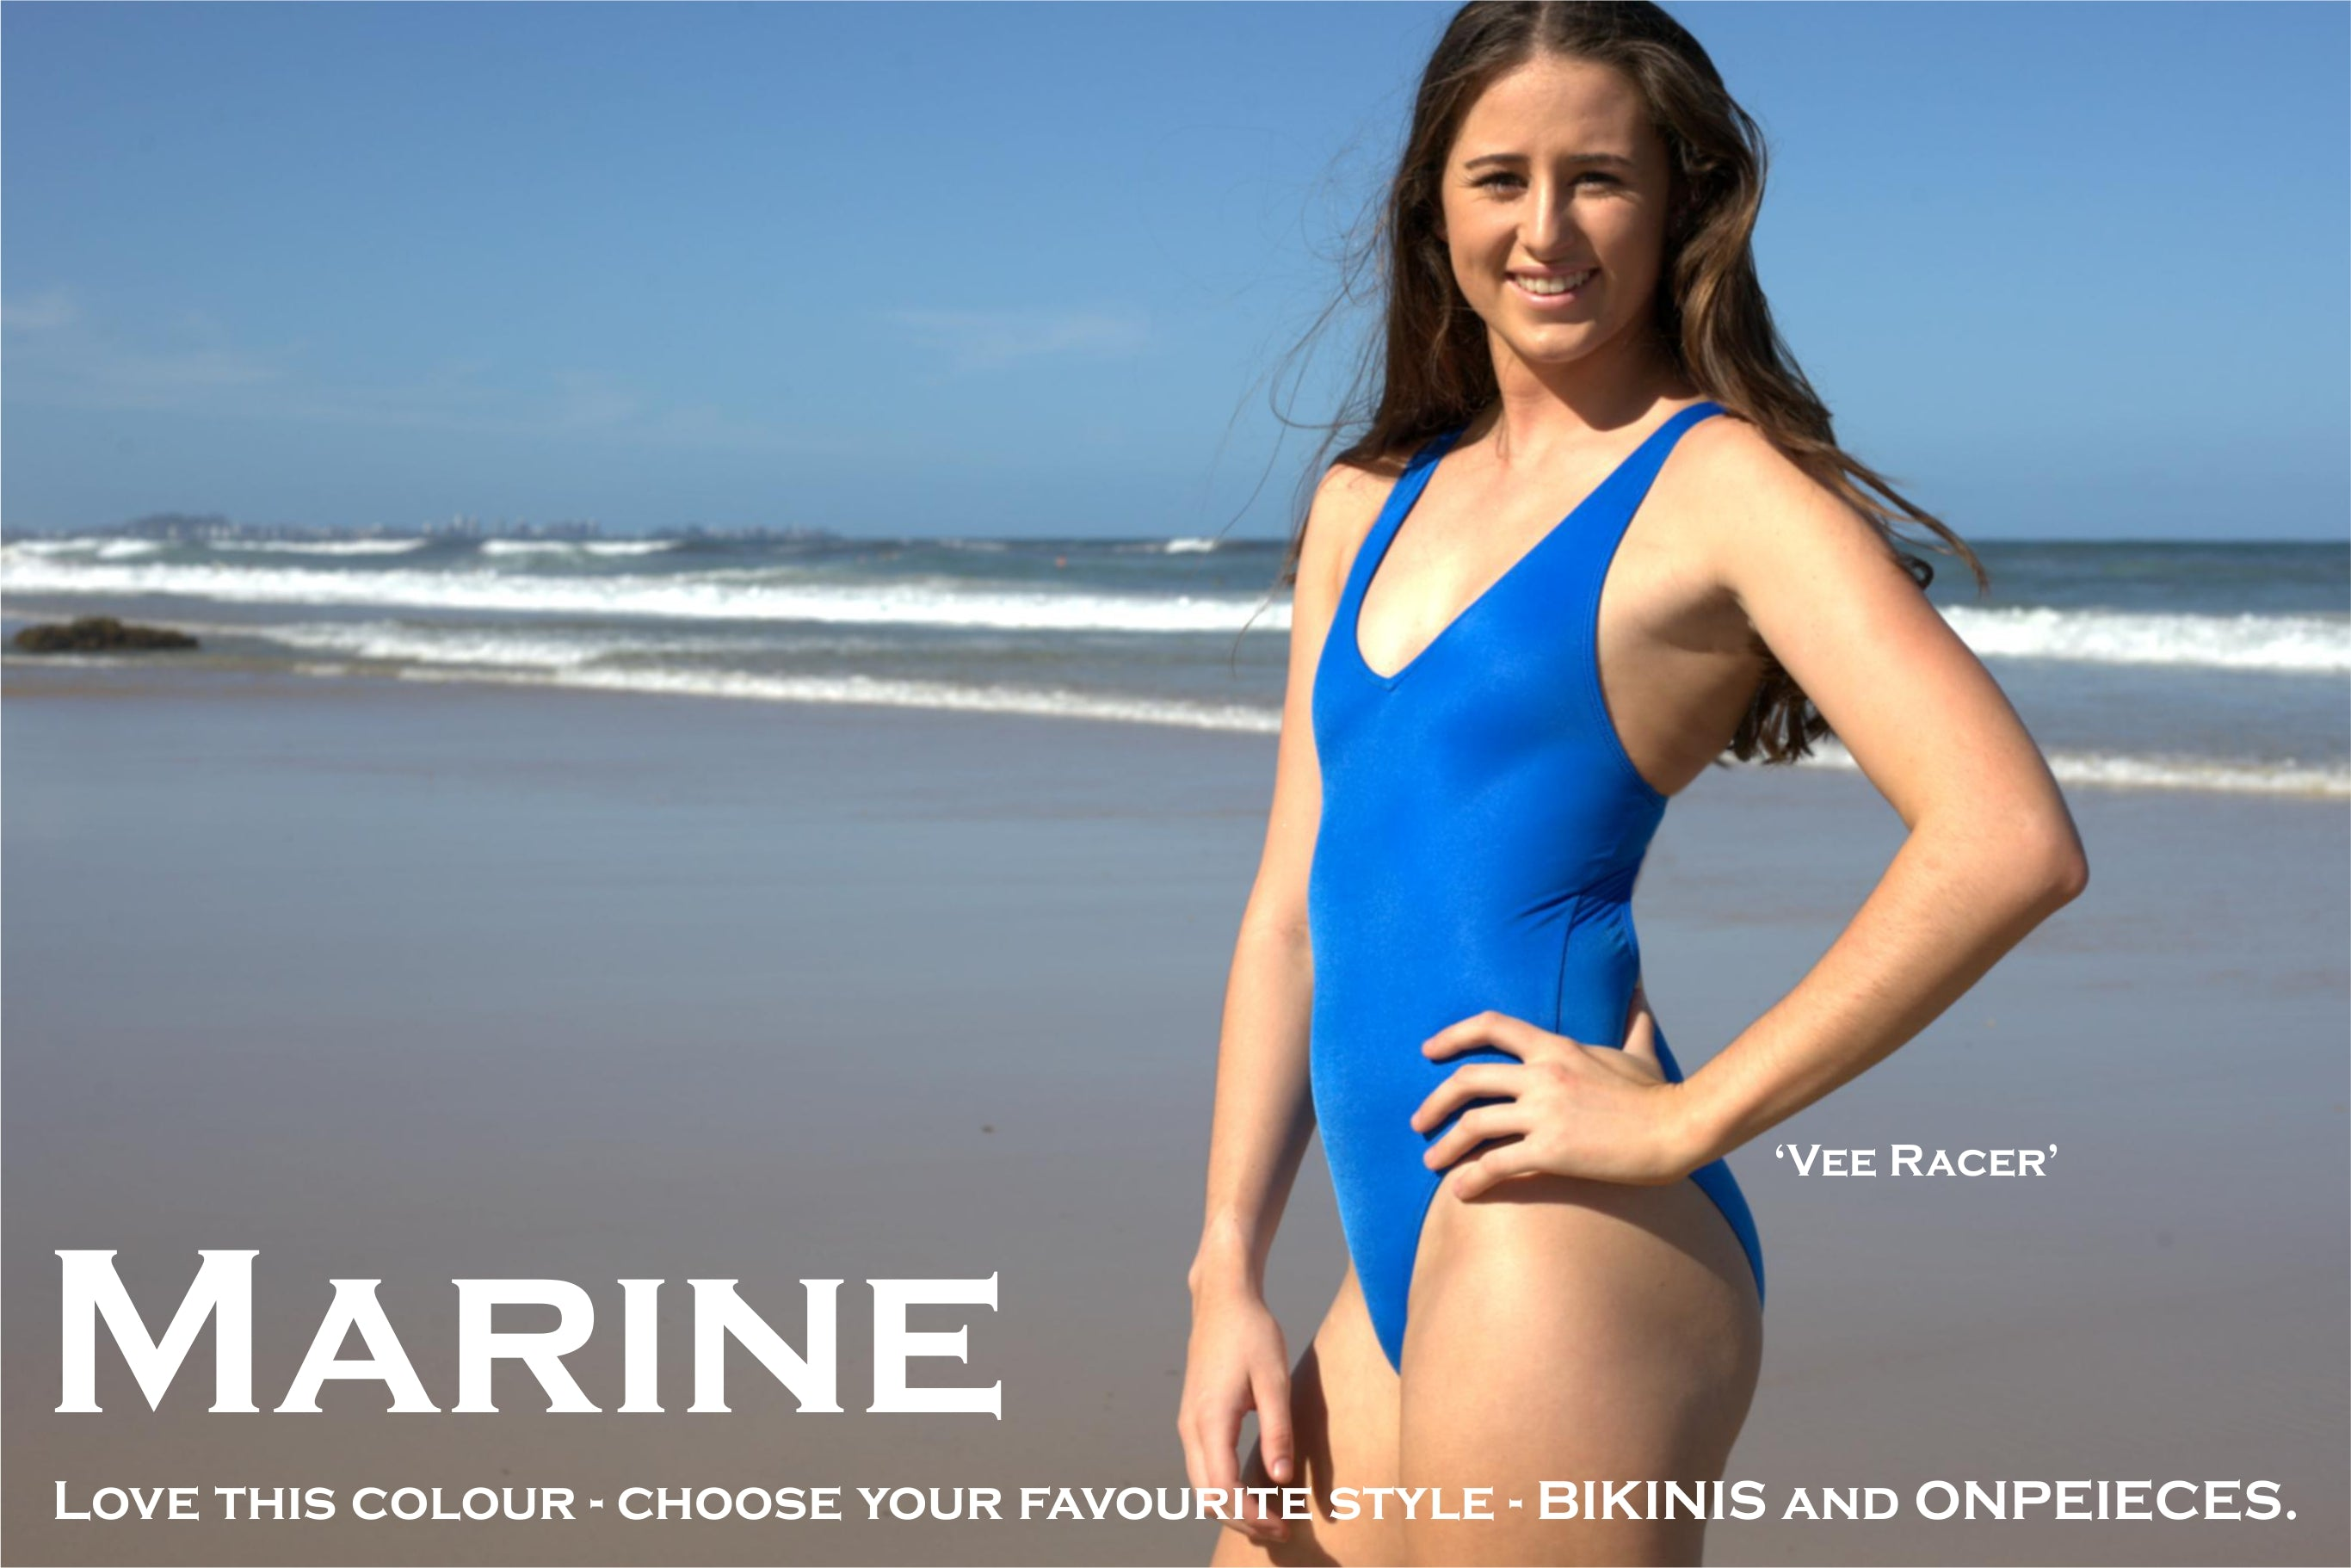 Marine  - all styles in BIKINIS and ONEPIECES